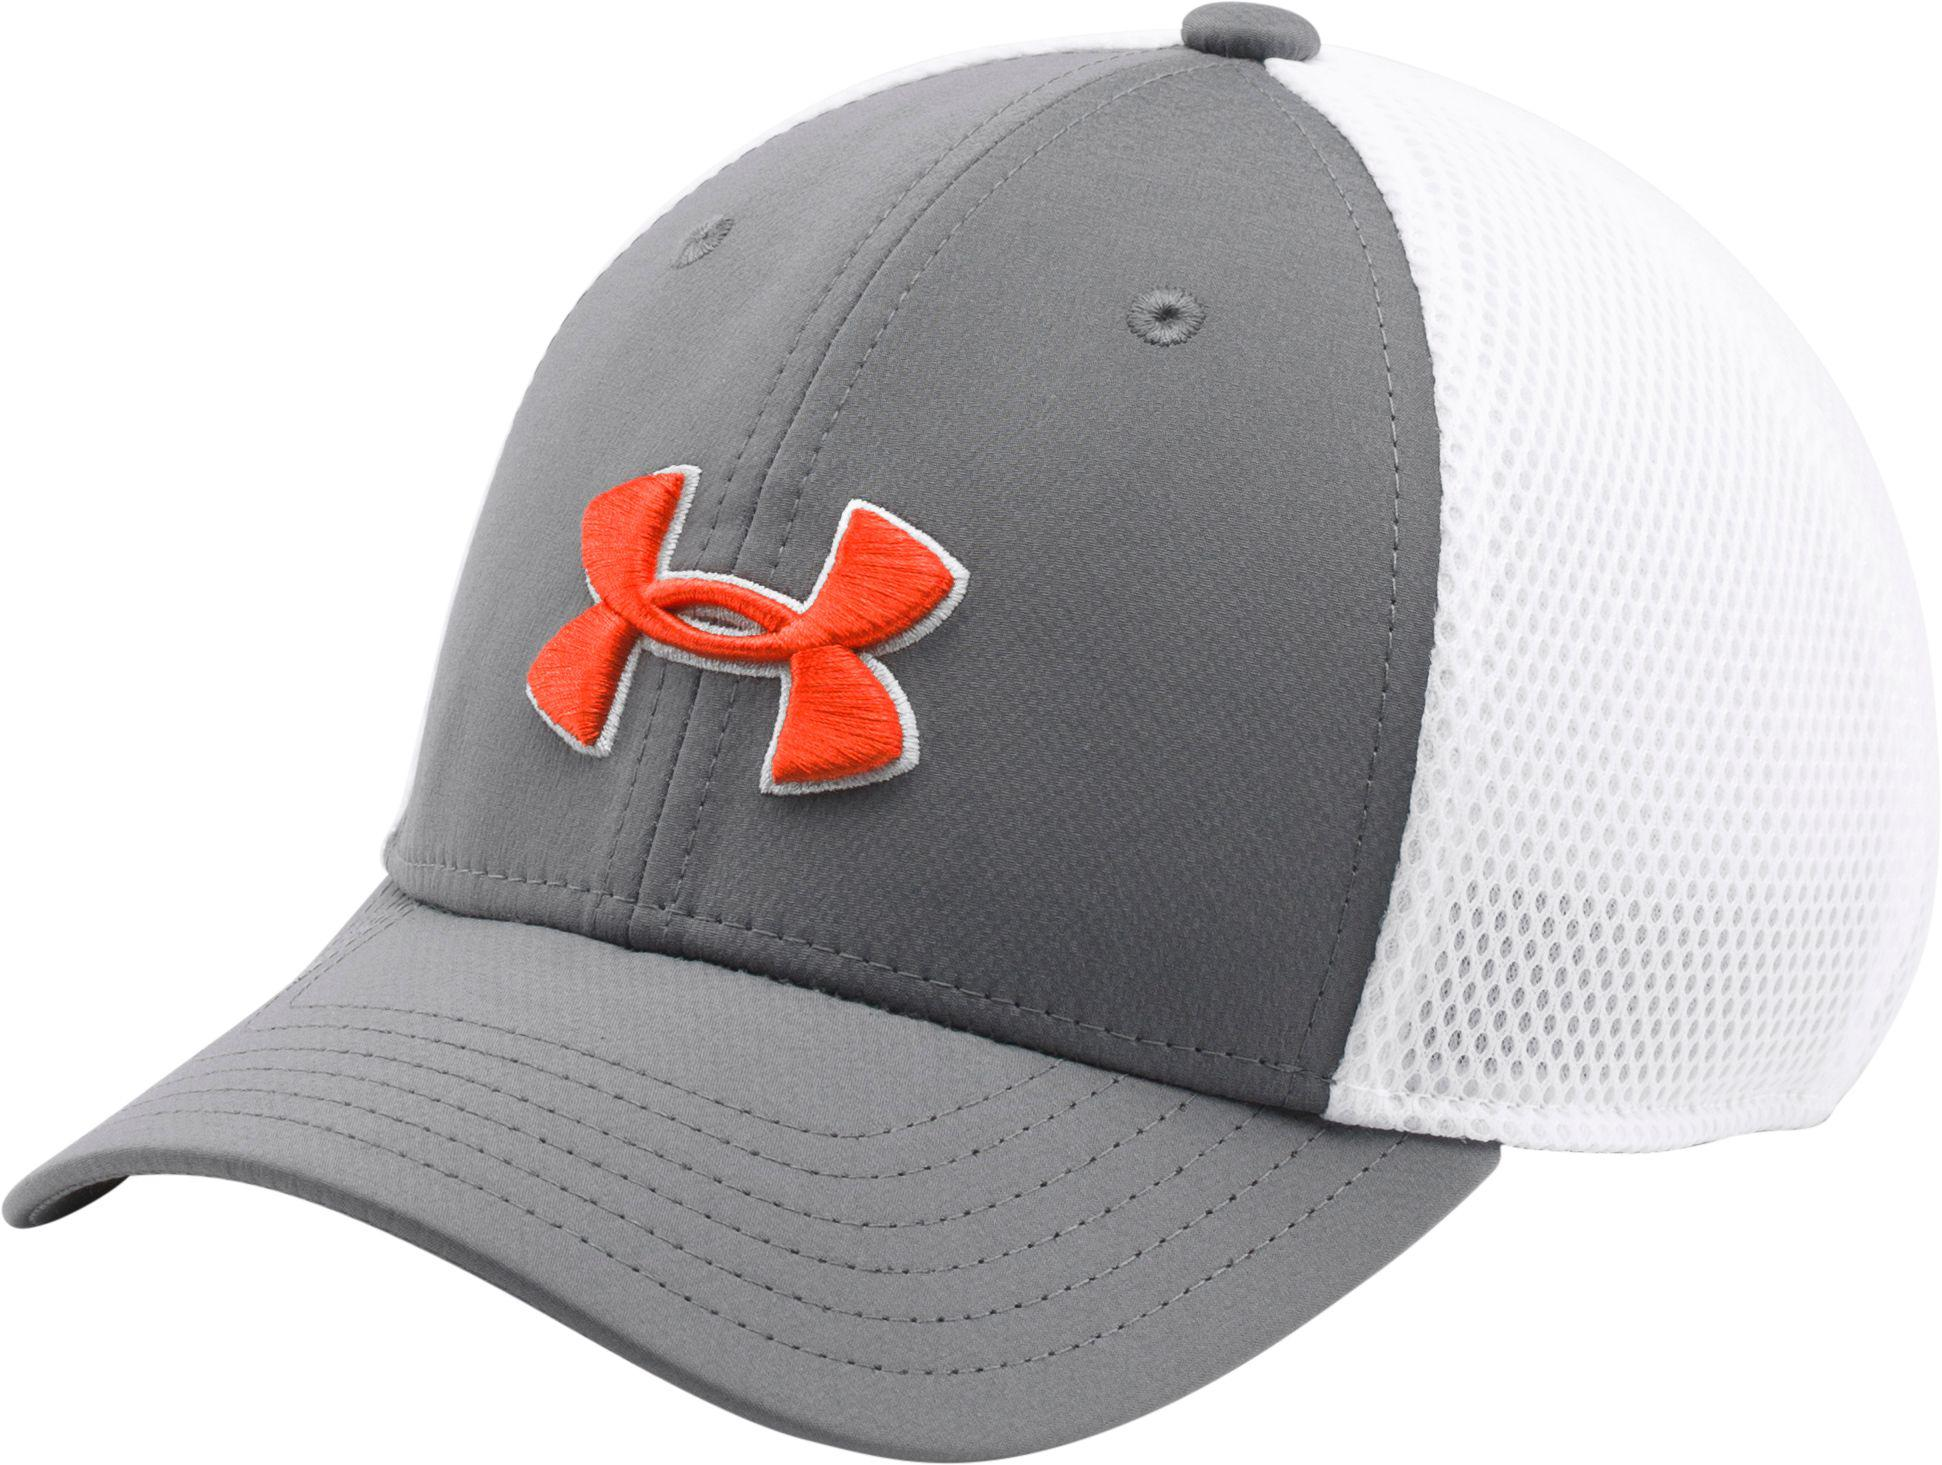 65d84d4f2a2 Lyst - Under Armour Oy s Classic Mesh Golf Hat for Men